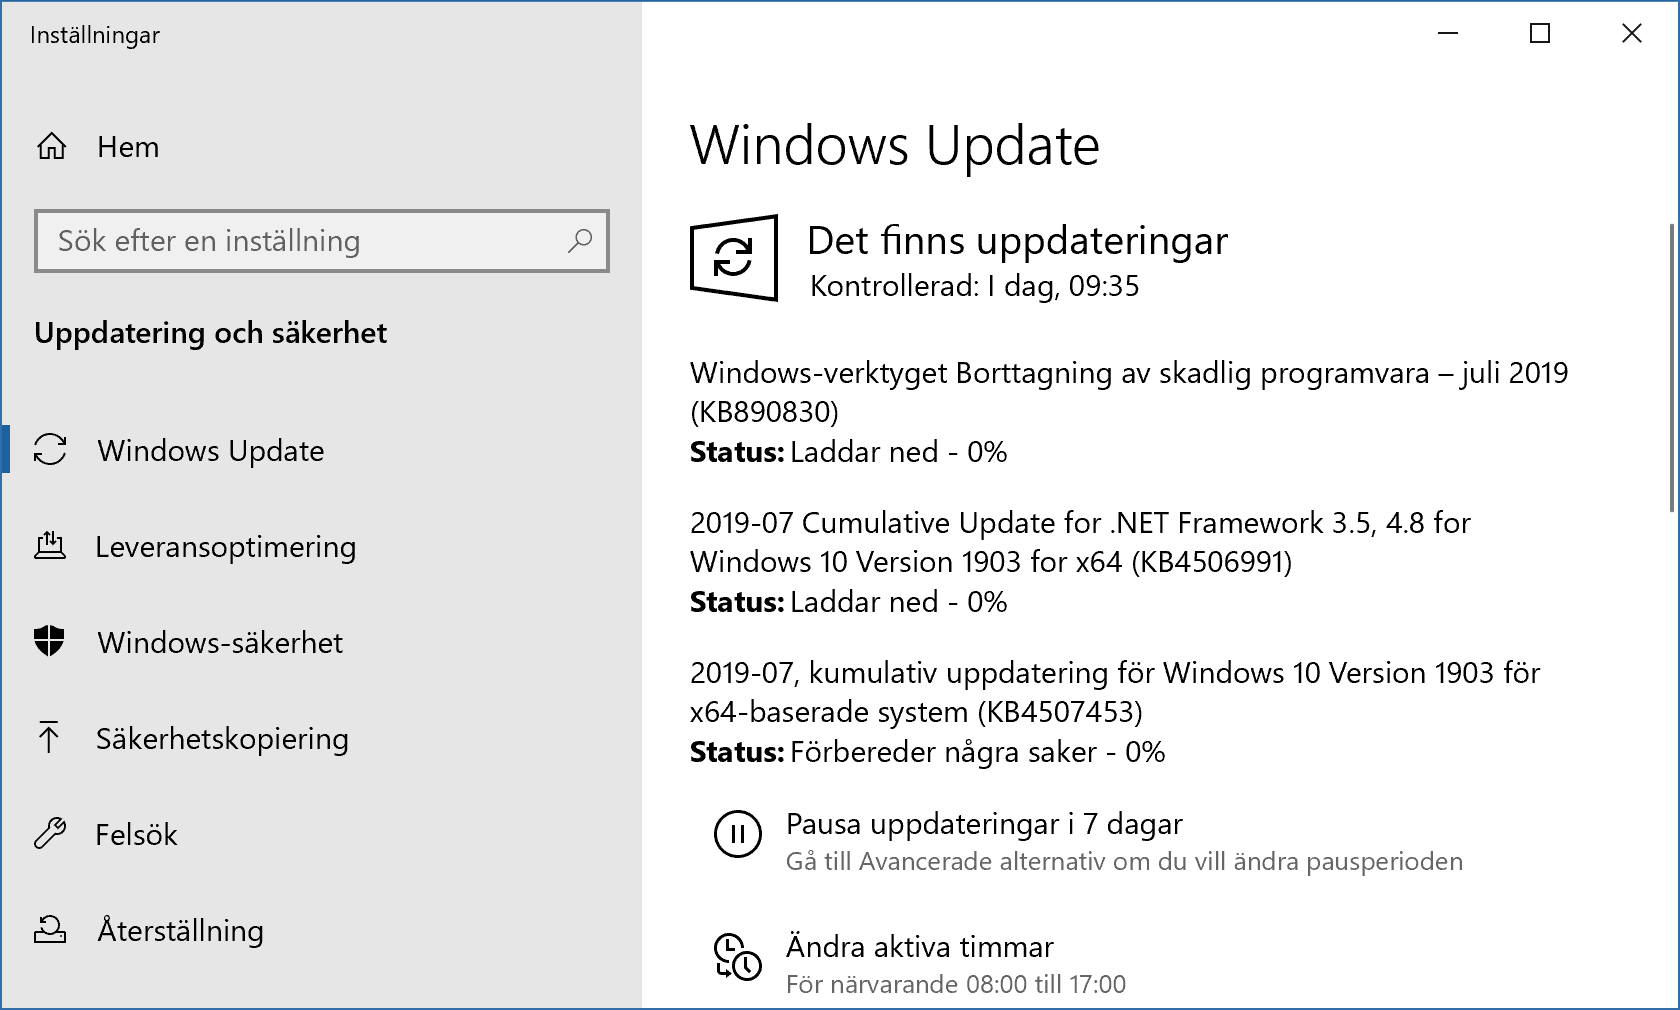 Windows Update installerar julis säkerhetsuppdateringar.